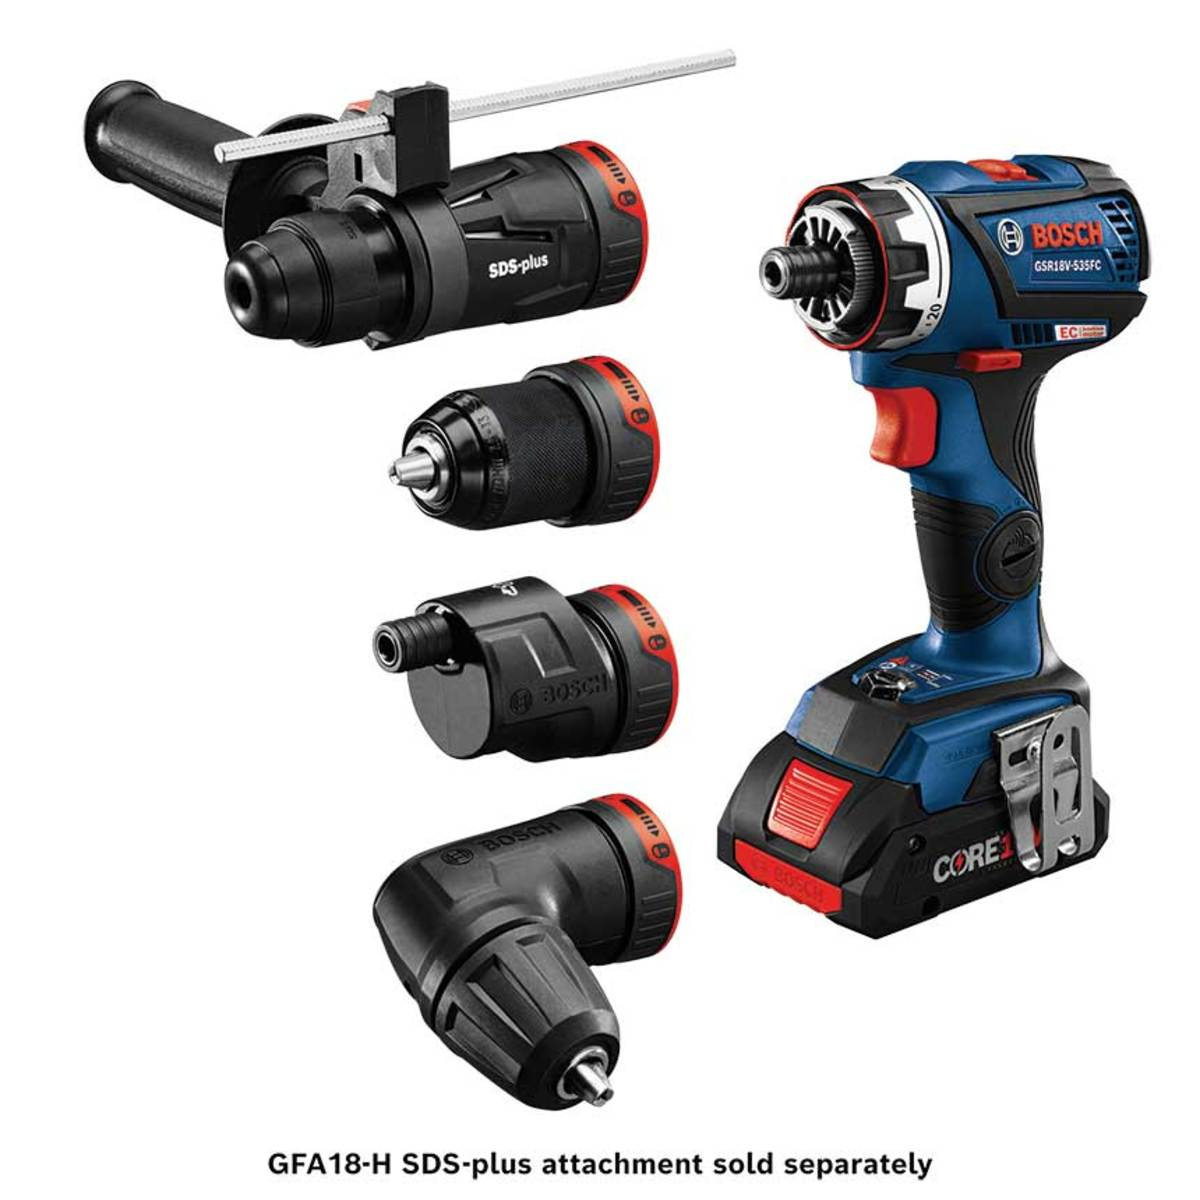 The Bosch FlexiClick is offered in a kit with three attachments. A rotary hammer attachment (top) is sold seperately.